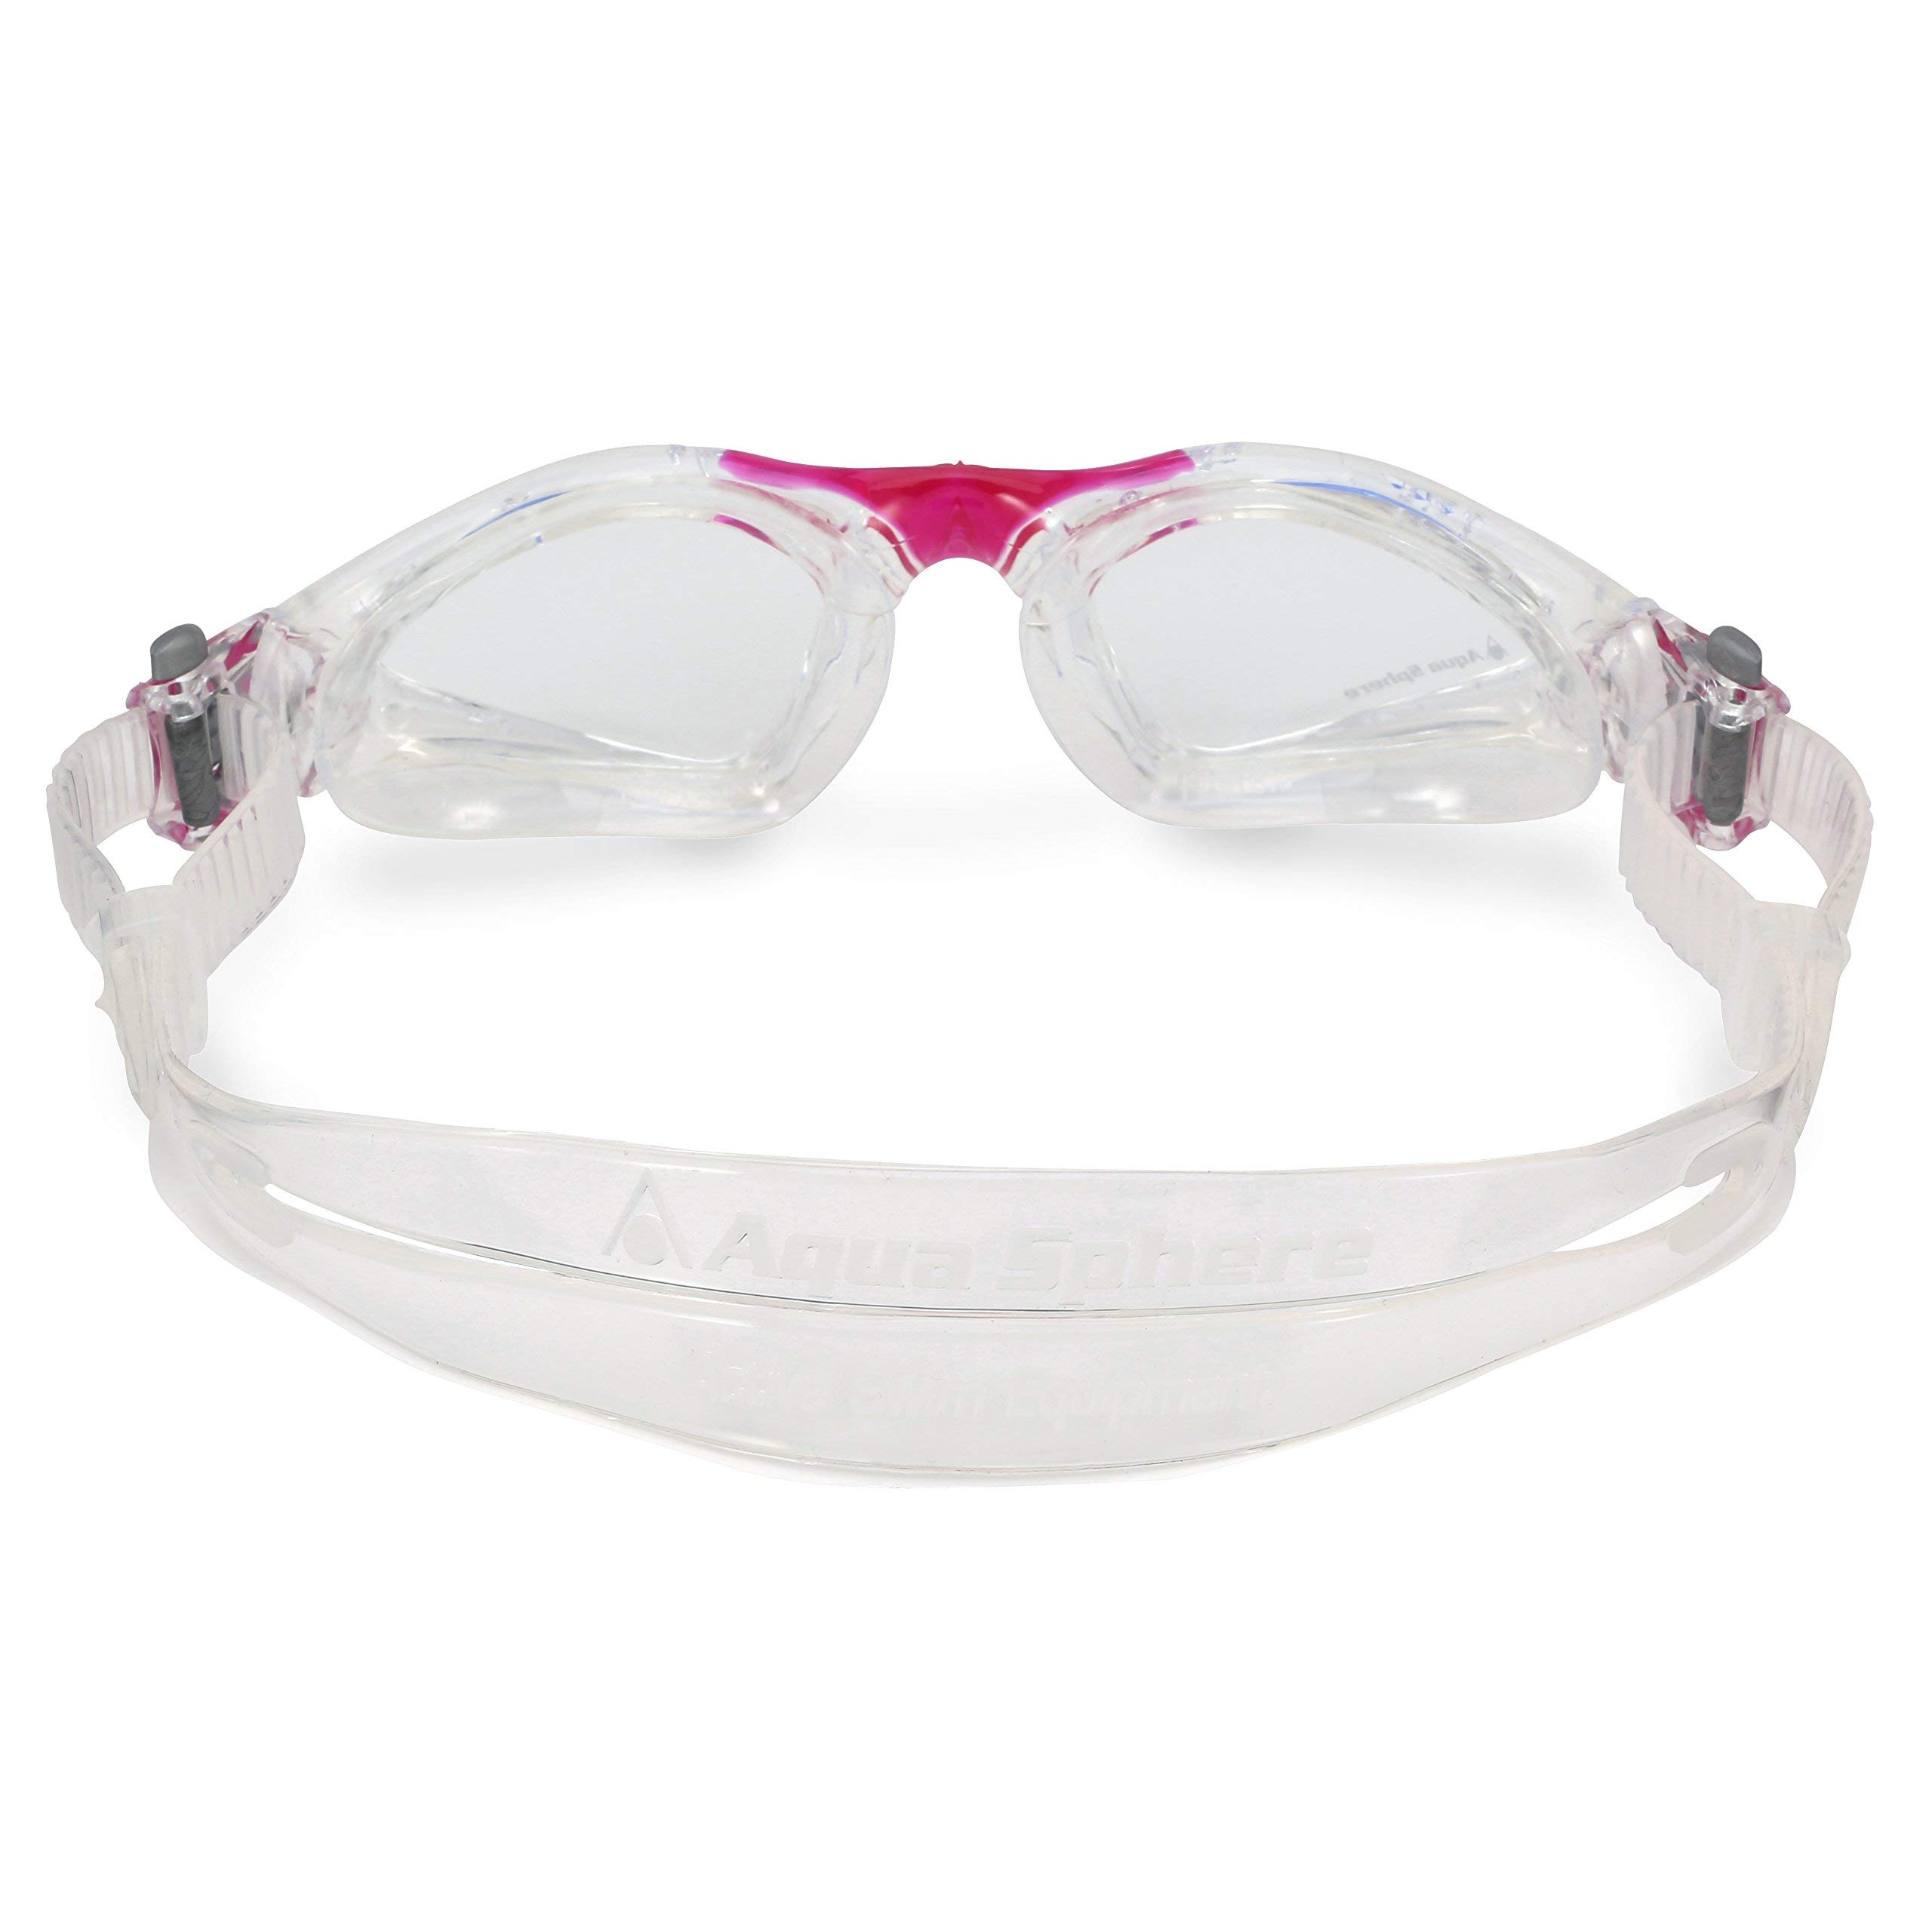 Aqua Sphere Kayenne Ladies with Clear Lens (Trasp/Fuxia) Swim Goggles for Women by Aqua Sphere (Image #5)